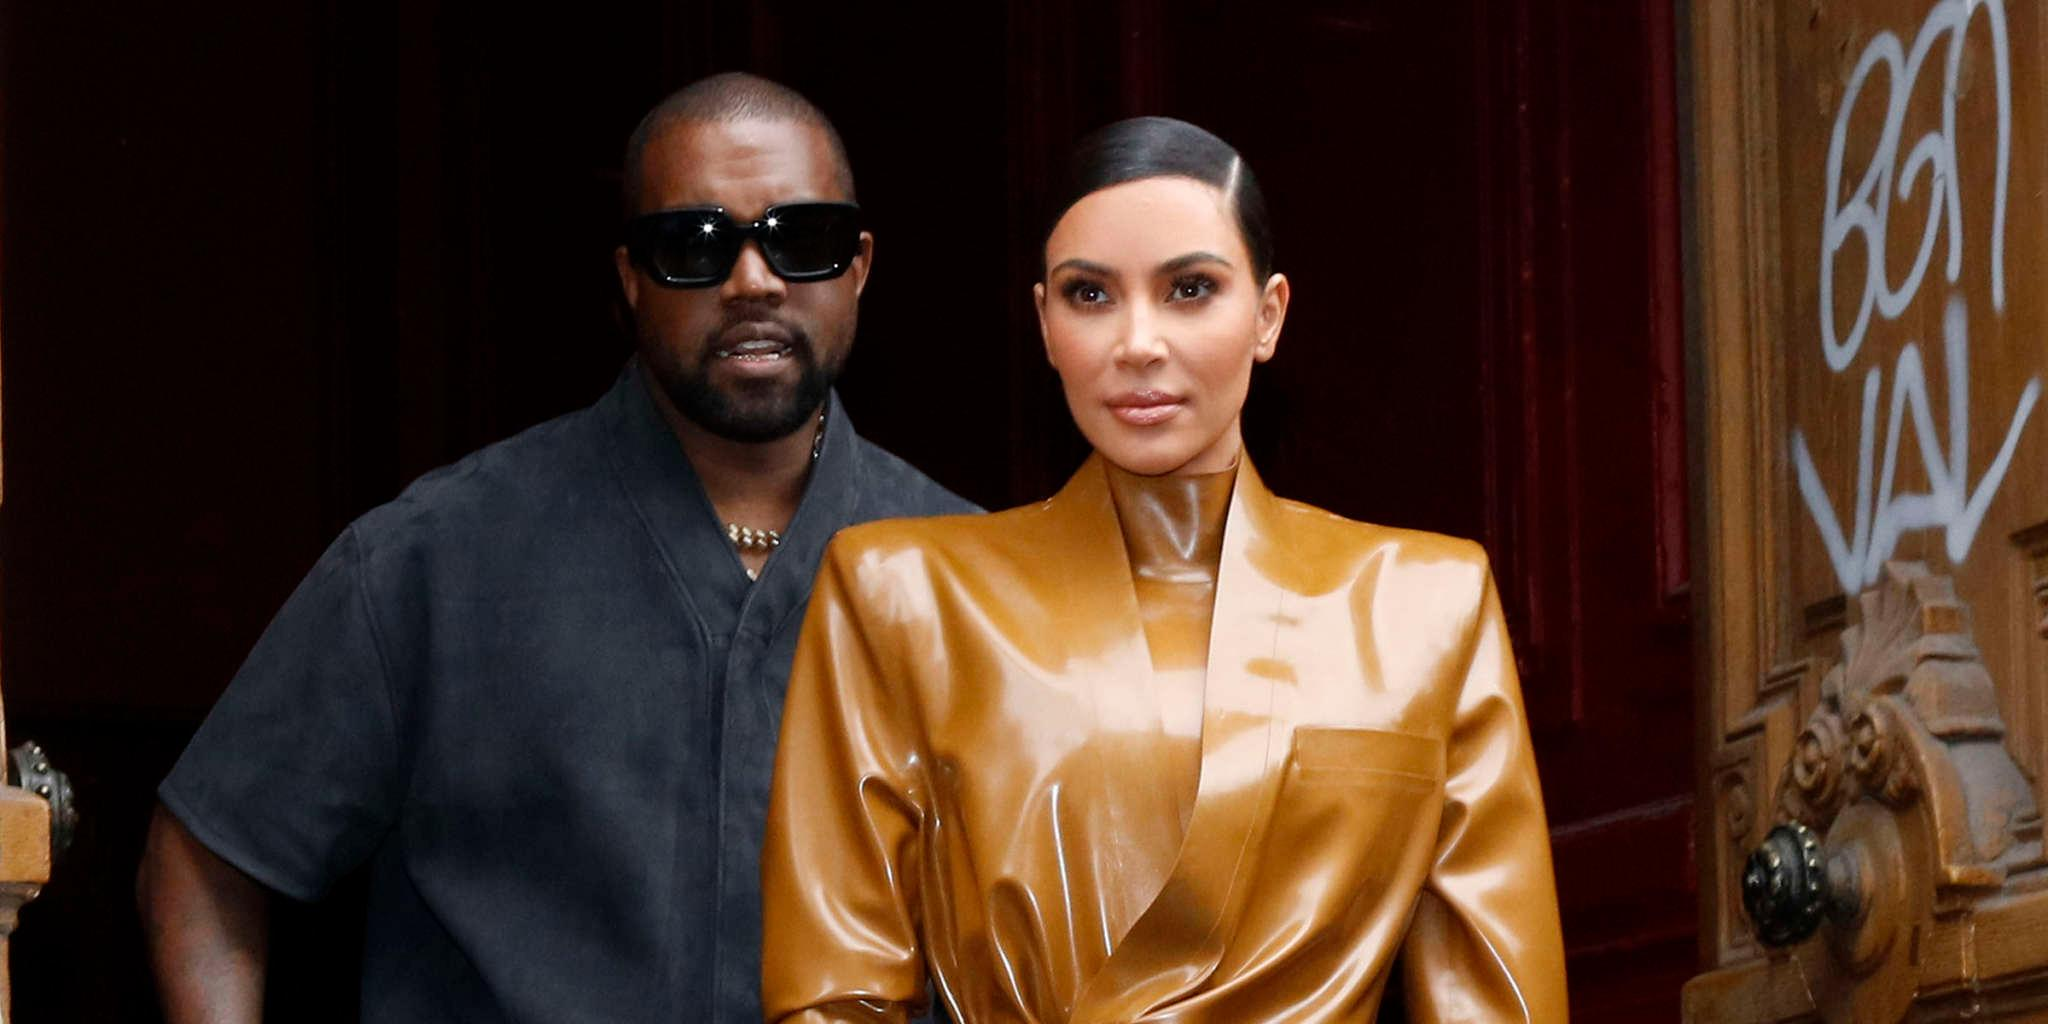 KUWTK: Kanye West Looking Forward To Becoming The President In 2024 - Is Convinced Kim Kardashian Would Make A Great First Lady!